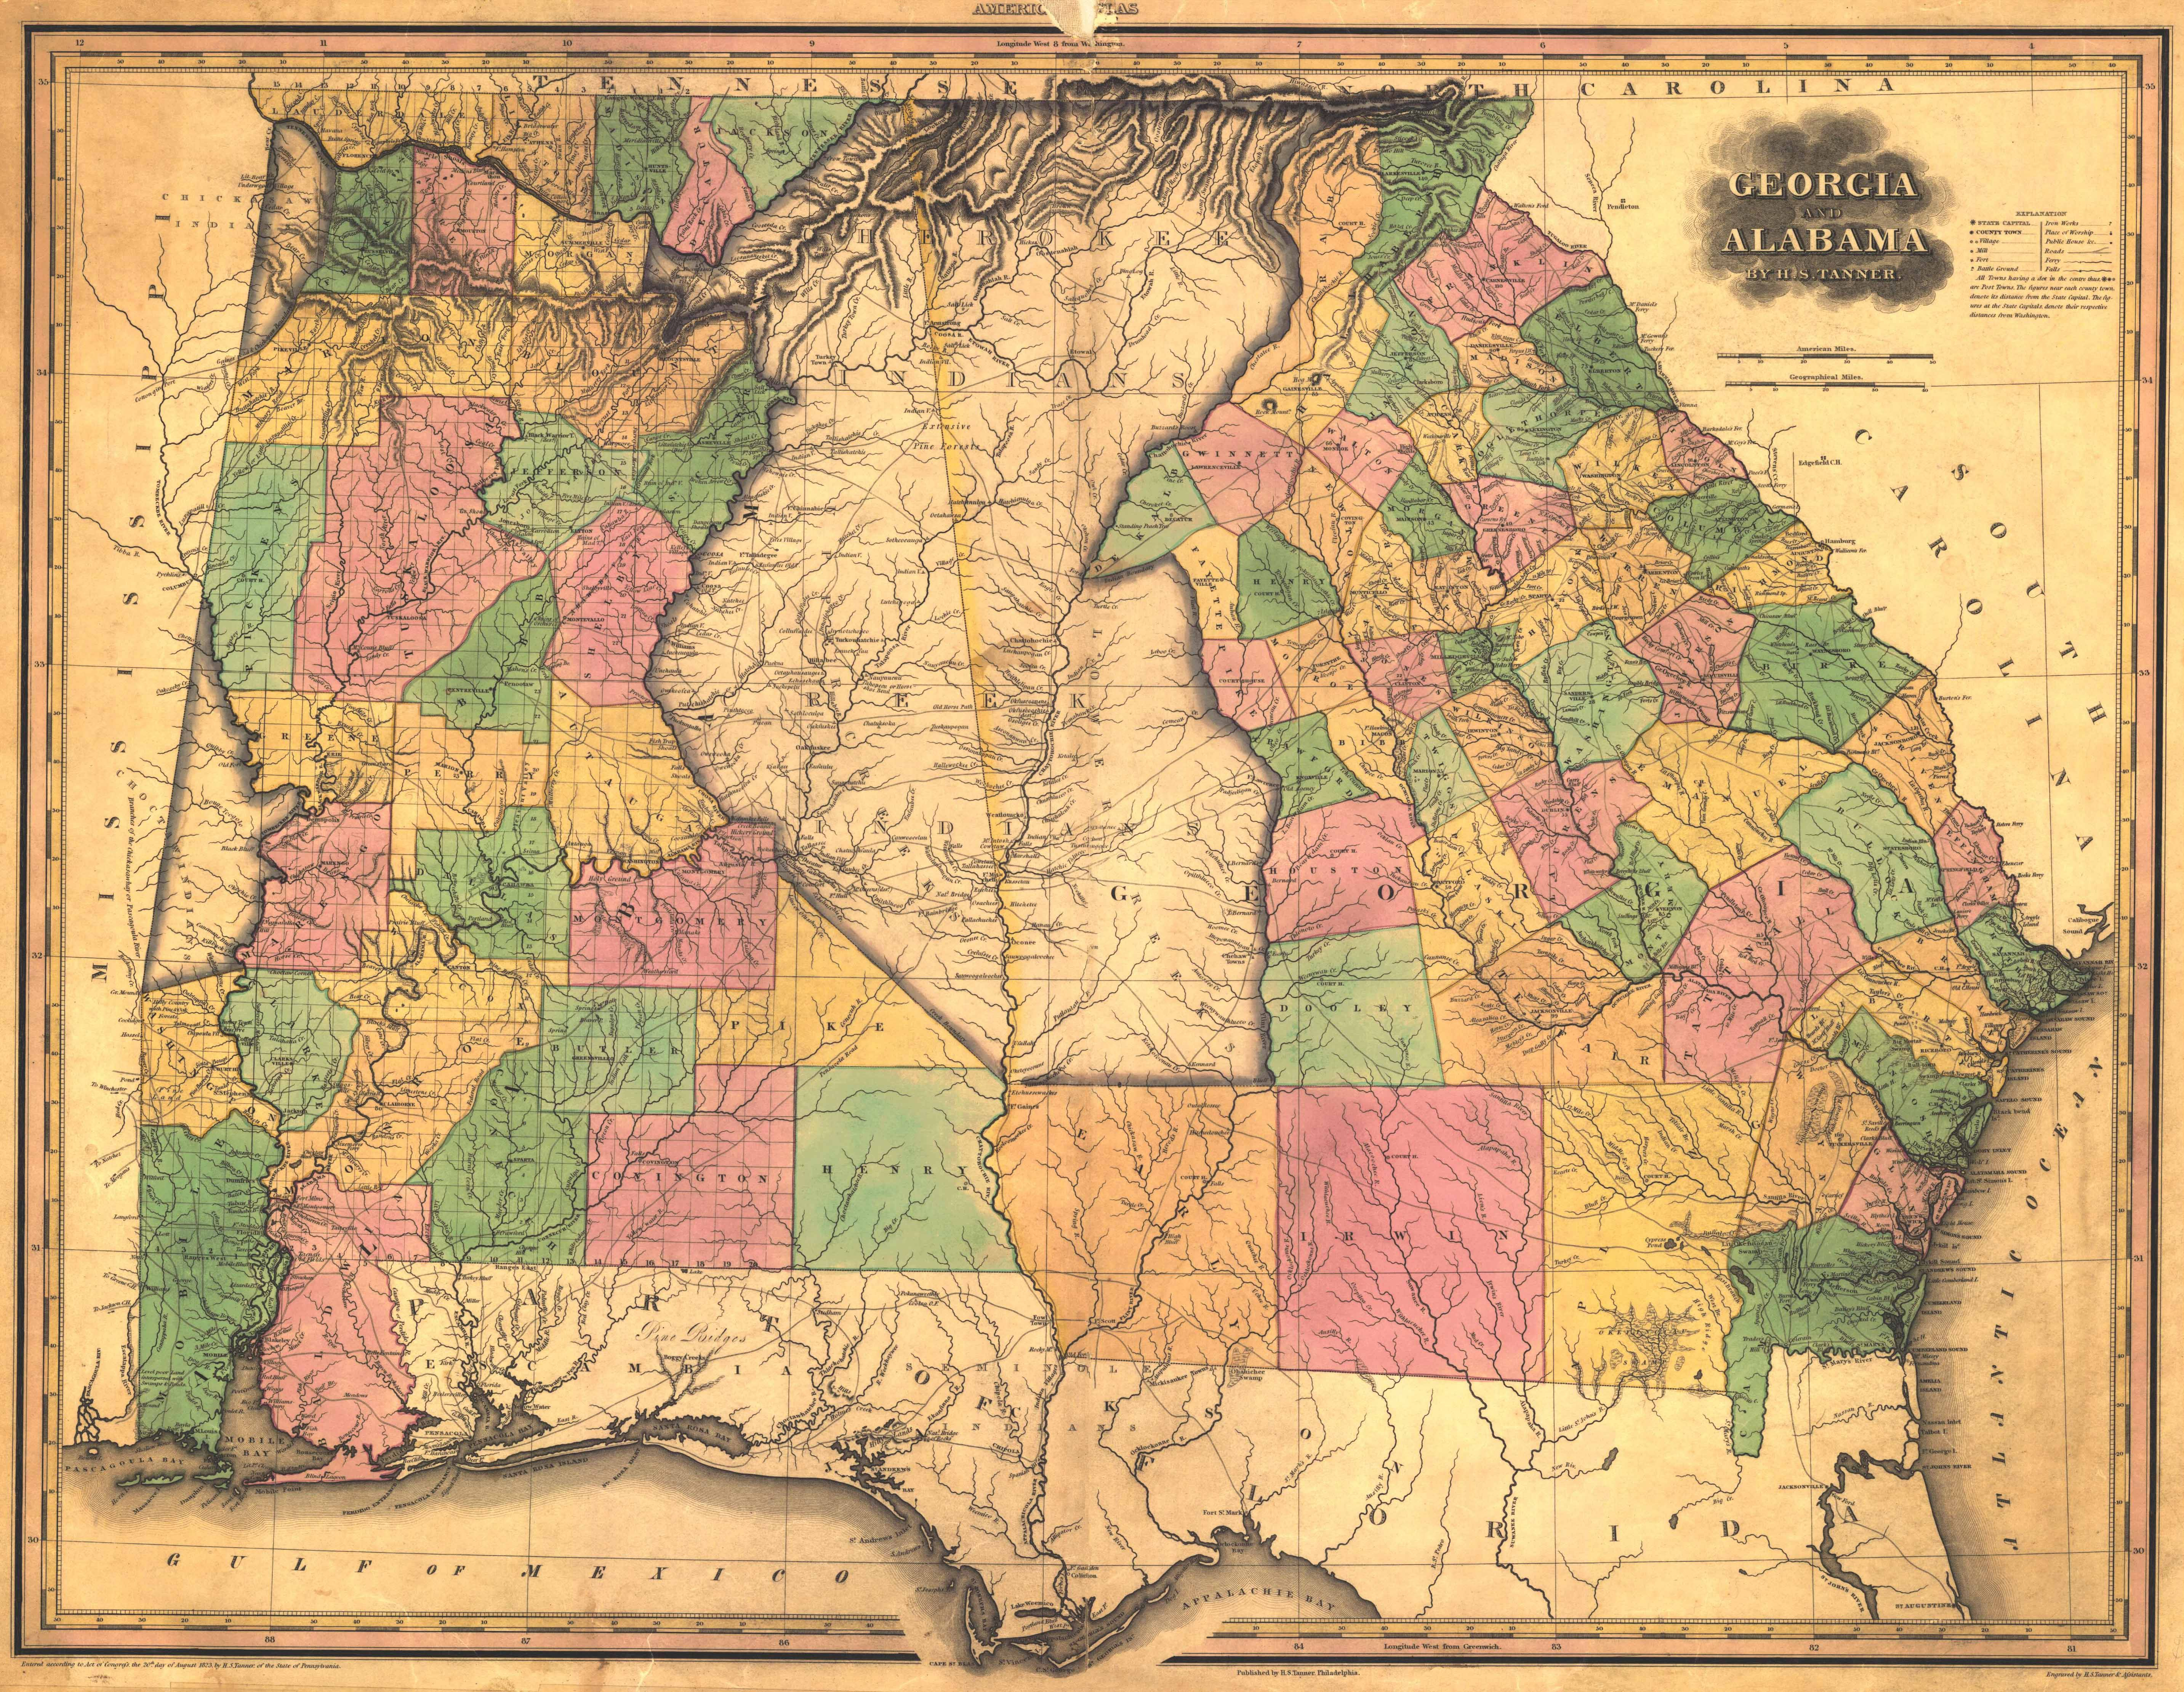 https://upload.wikimedia.org/wikipedia/commons/5/58 ... on georgia state highway map, state florida map, state of michigan townships, state of rhode island, state of tennessee rivers, state of massachusetts, texas state map, city of atlanta map, tennessee state map, state of arizona flag, metropolitan atlanta rapid transit authority map, state of jefferson counties, state of philadelphia, state of nd, united states map, state of north carolina, state of ky, state of pennsylvania, state of ma, throckmorton map,